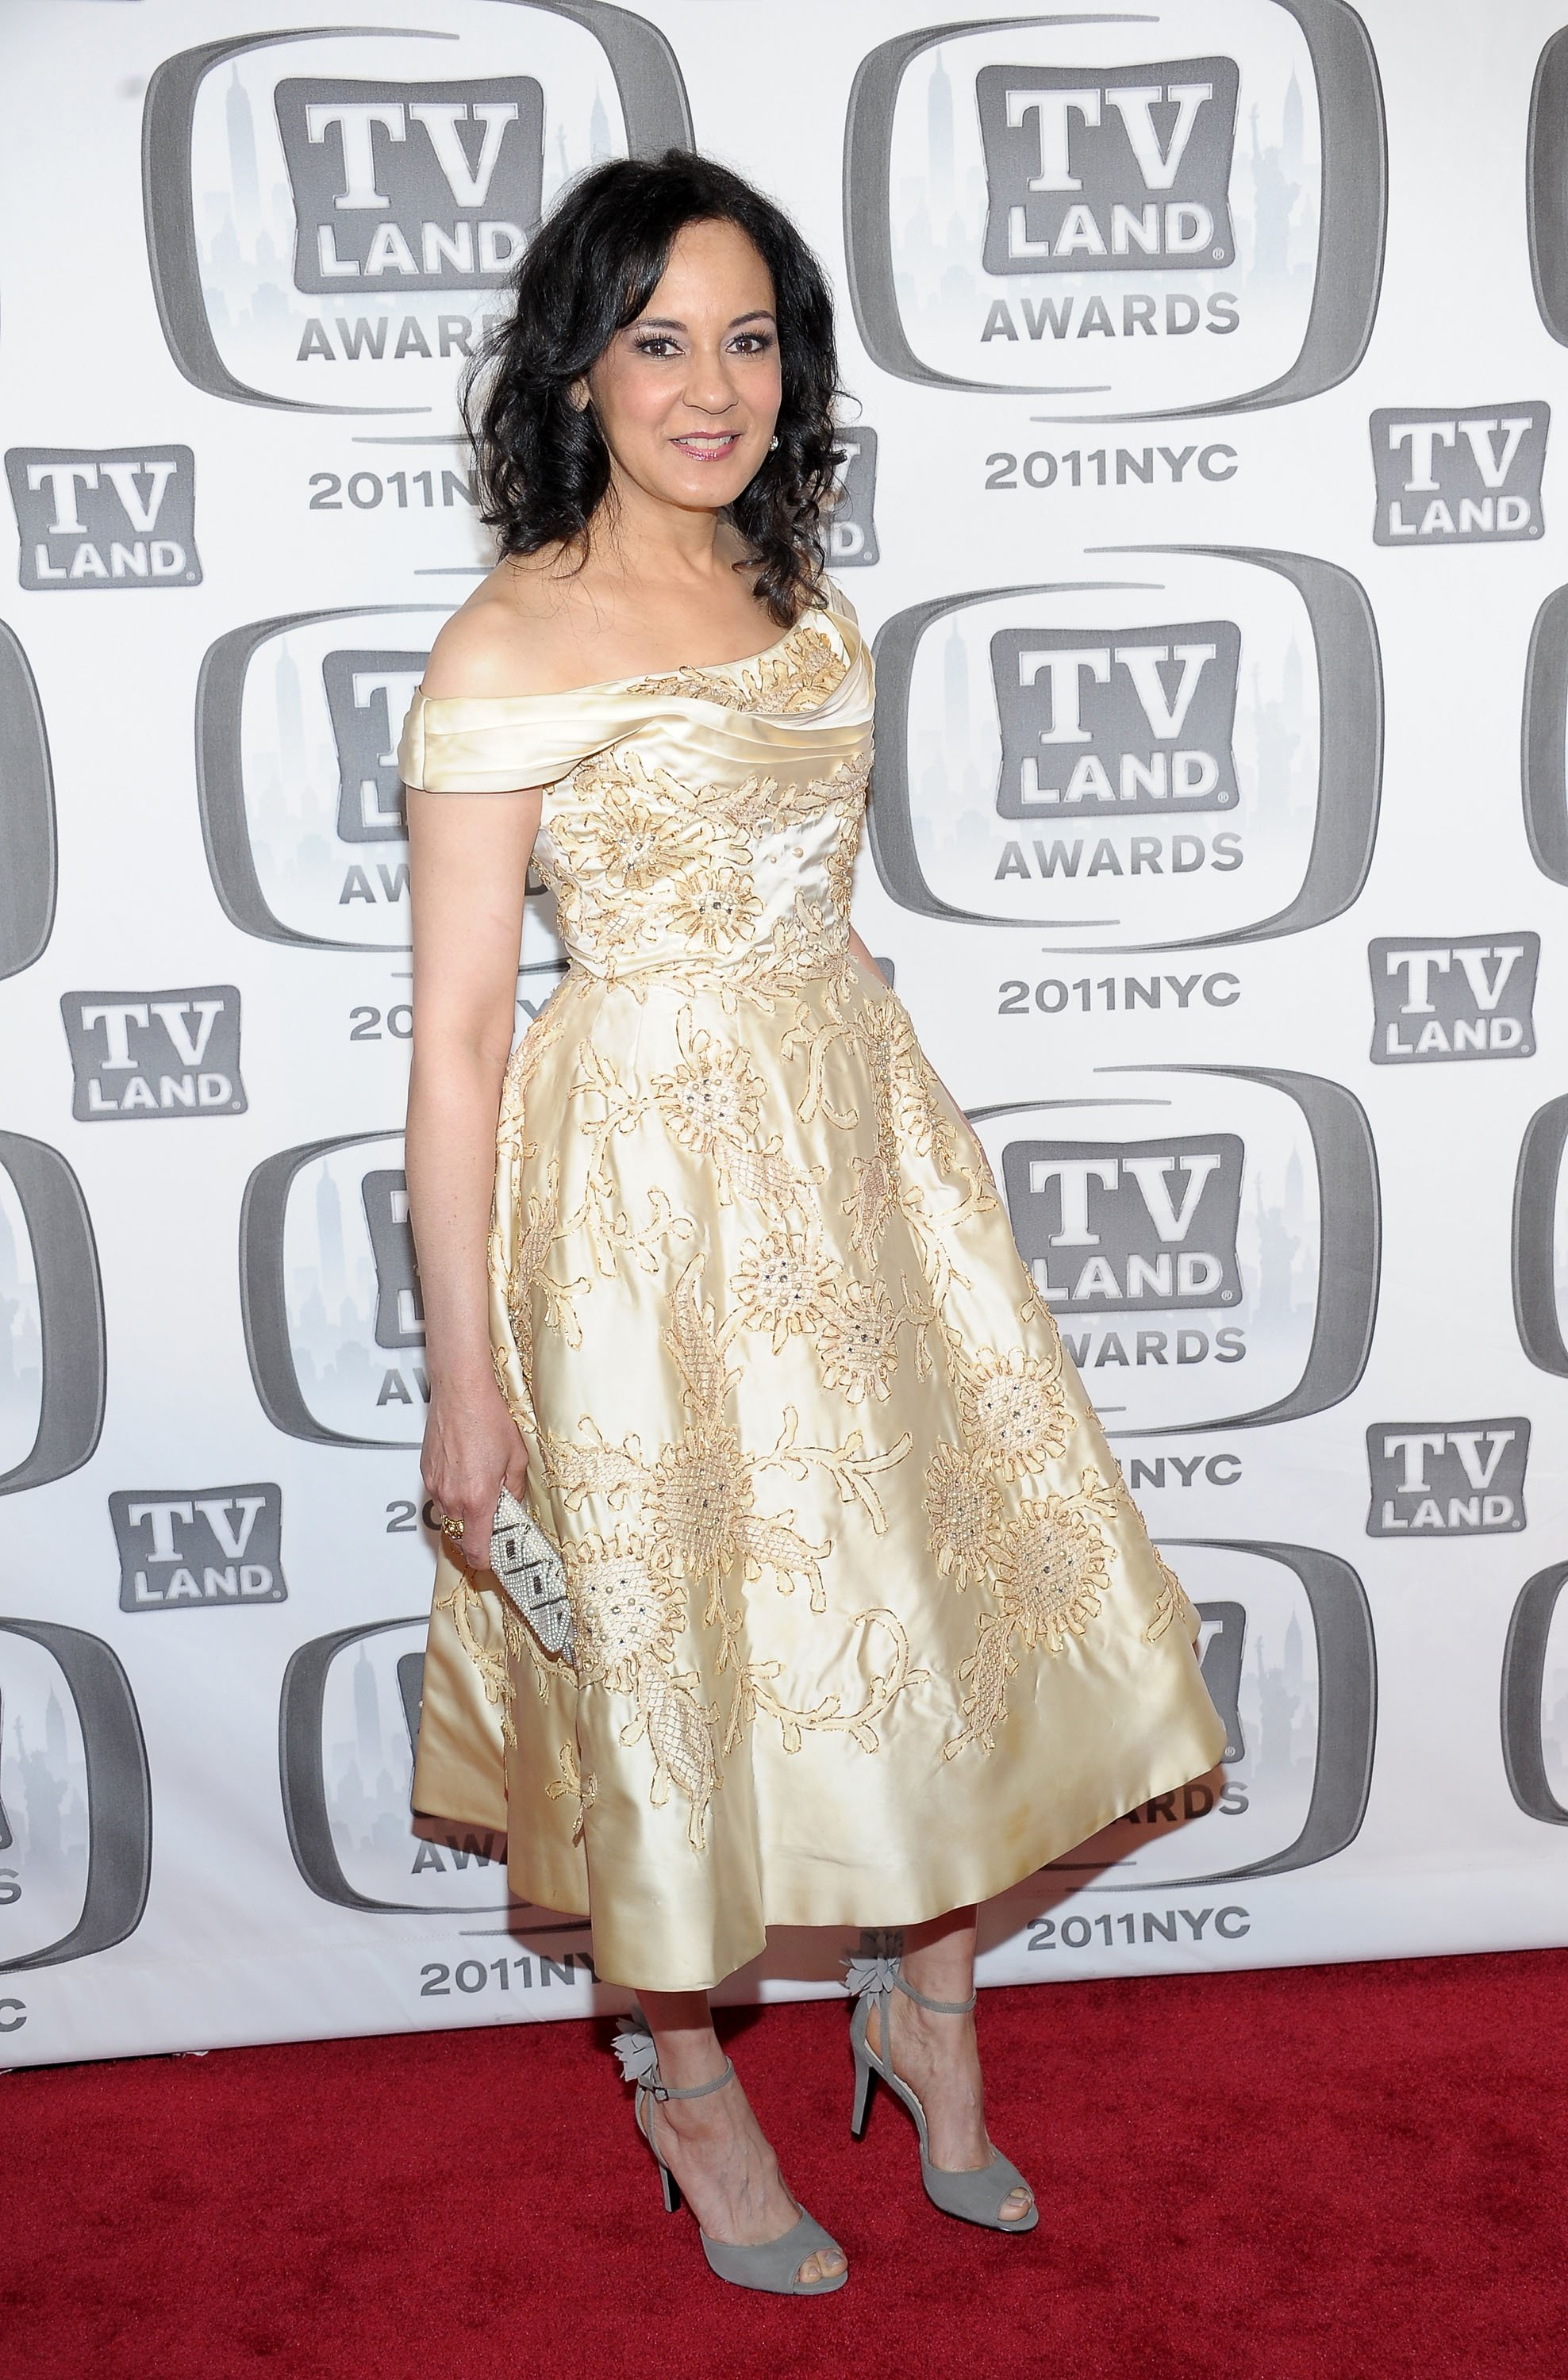 Sabrina LeBeauf attends the 9th Annual TV Land Awards at the Javits Center on April 10, 2011 in New York City | Photo: GettyImages